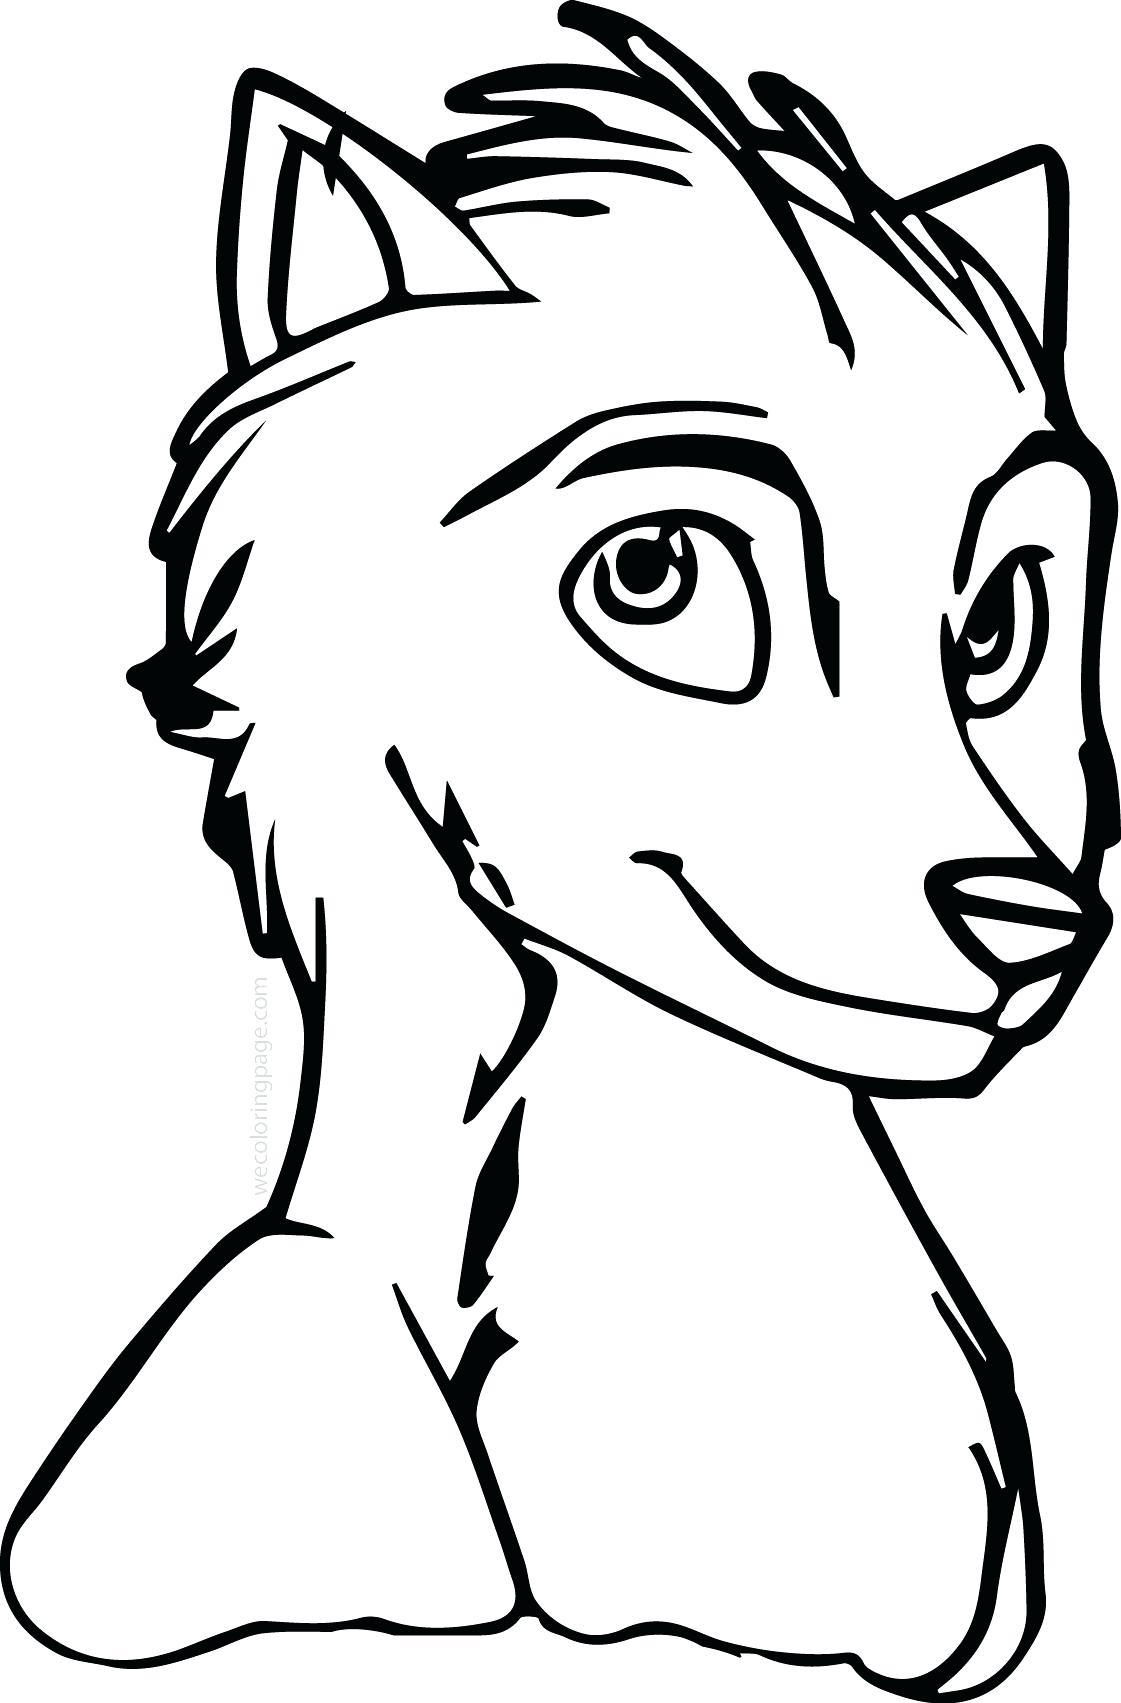 1121x1703 Images Wolf Coloring Pages Withdditional 131 Outstanding